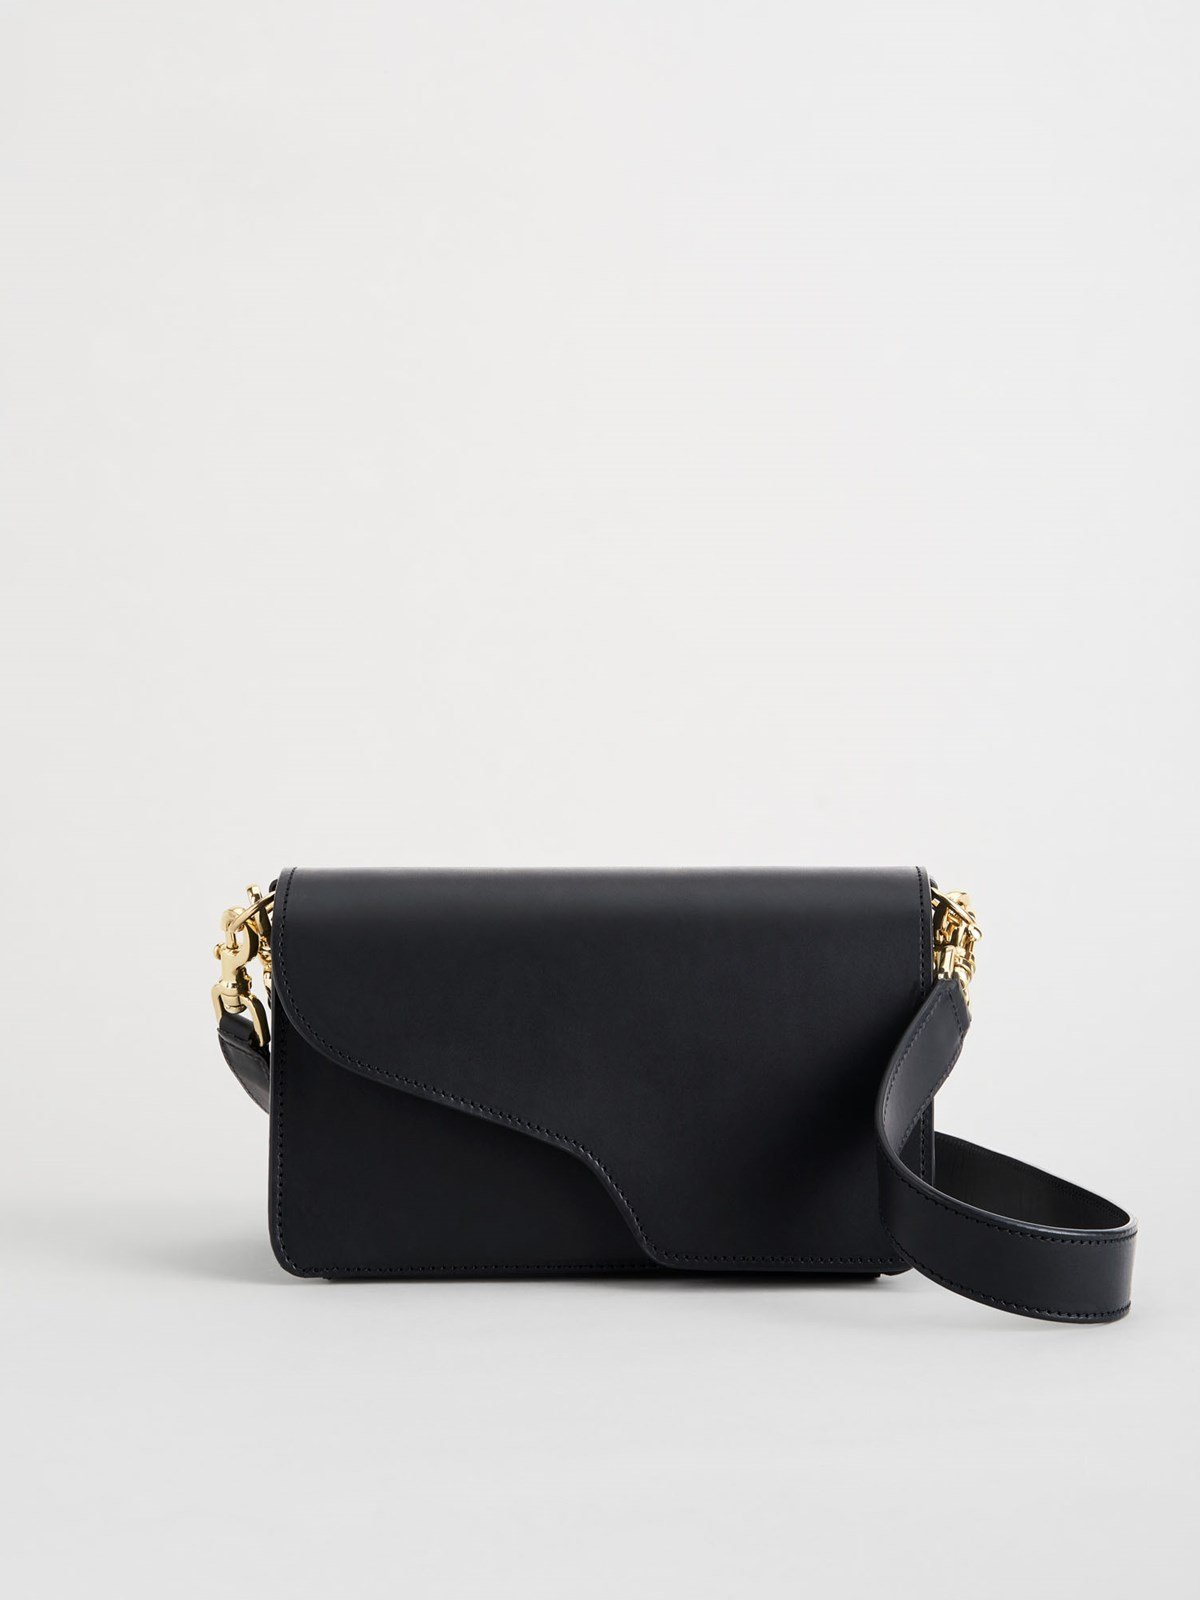 Assisi Black Baguette Bag